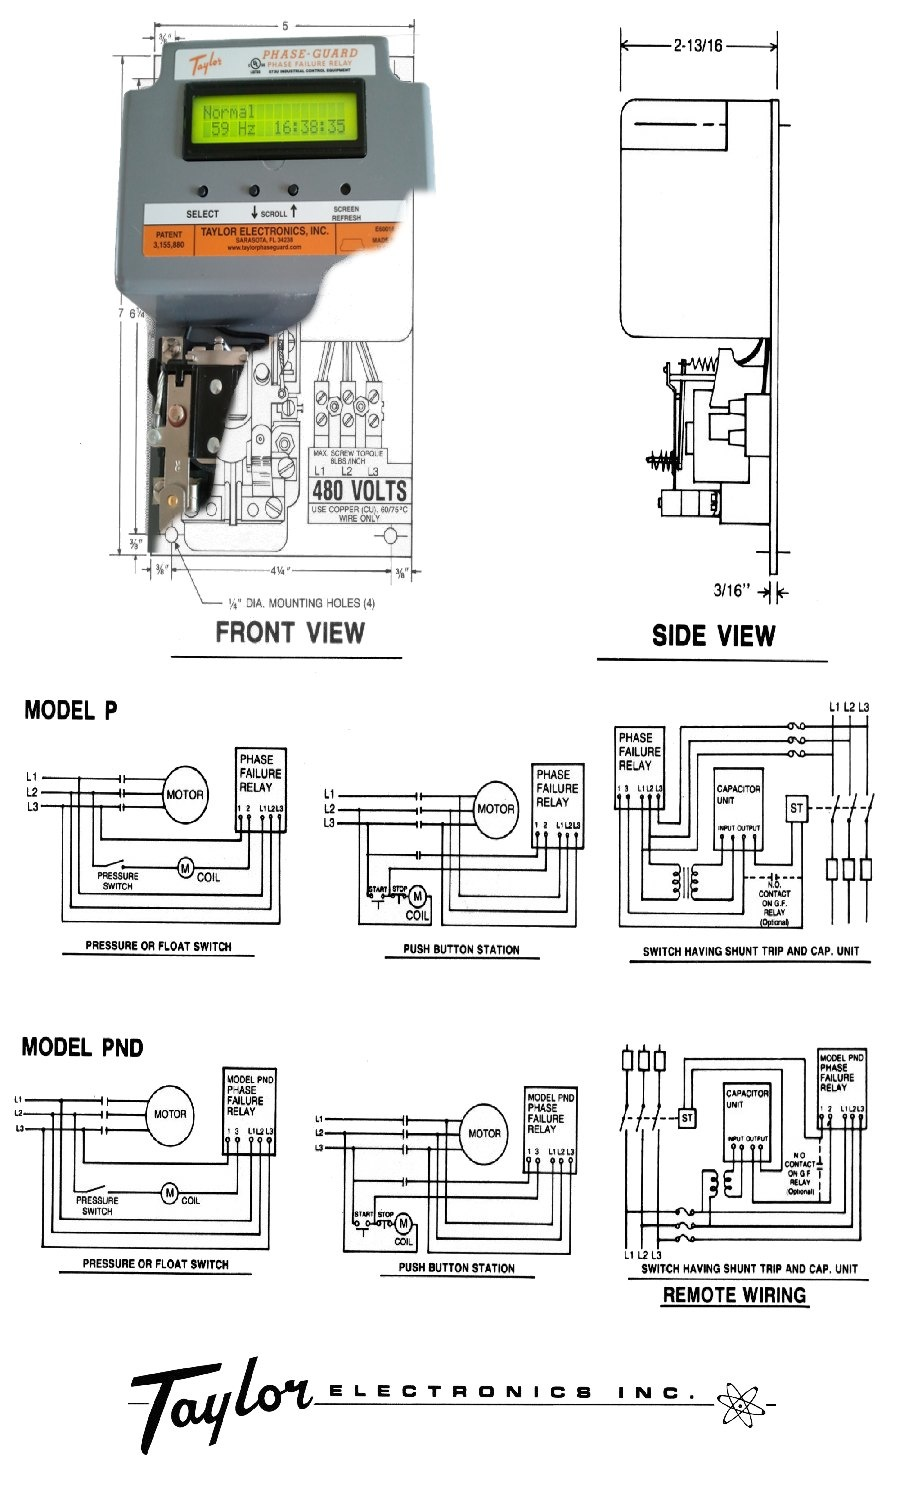 hyster forklift wiring diagram ear scala taylor diagrams great installation of third level rh 18 9 11 jacobwinterstein com mitsubishi